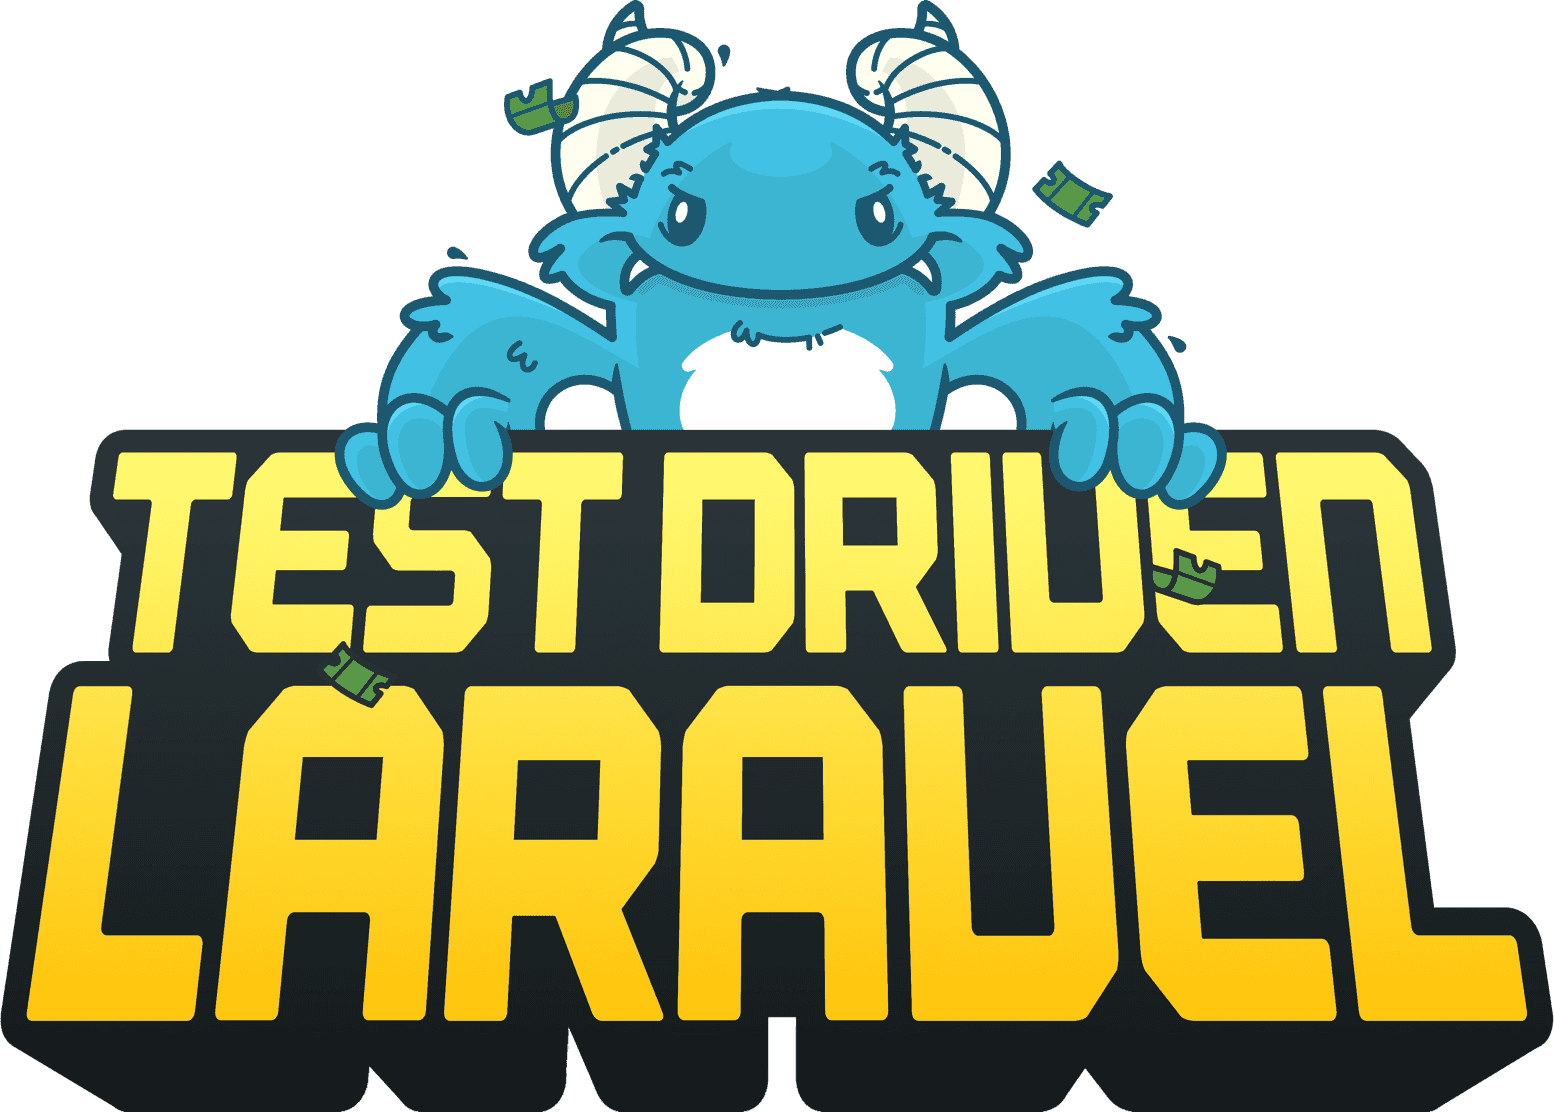 Test-Driven Laravel